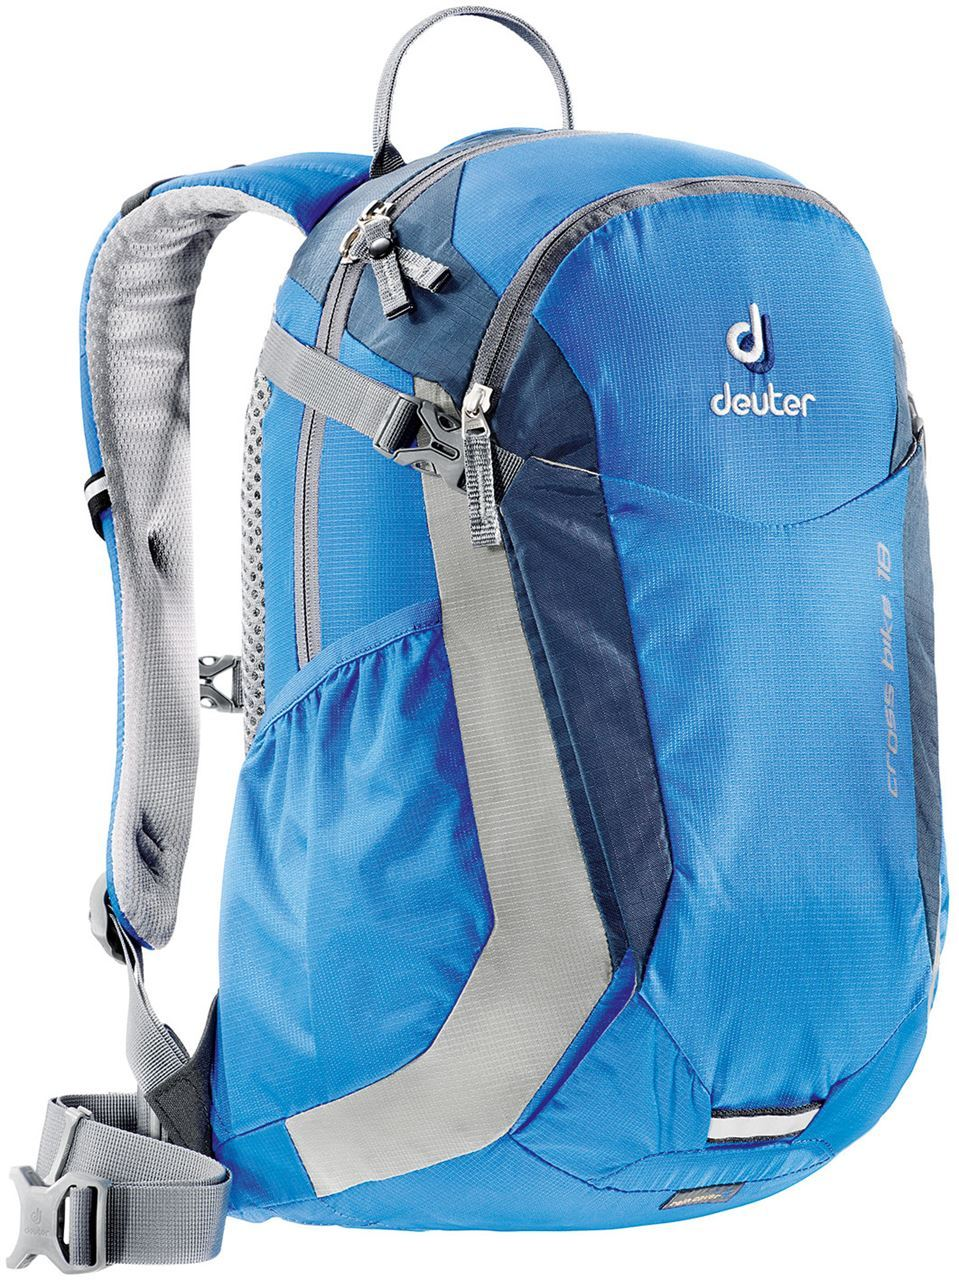 b6299455be Deuter Cross Bike 18 - Cool Blue - Cycles Galleria Melbourne ...